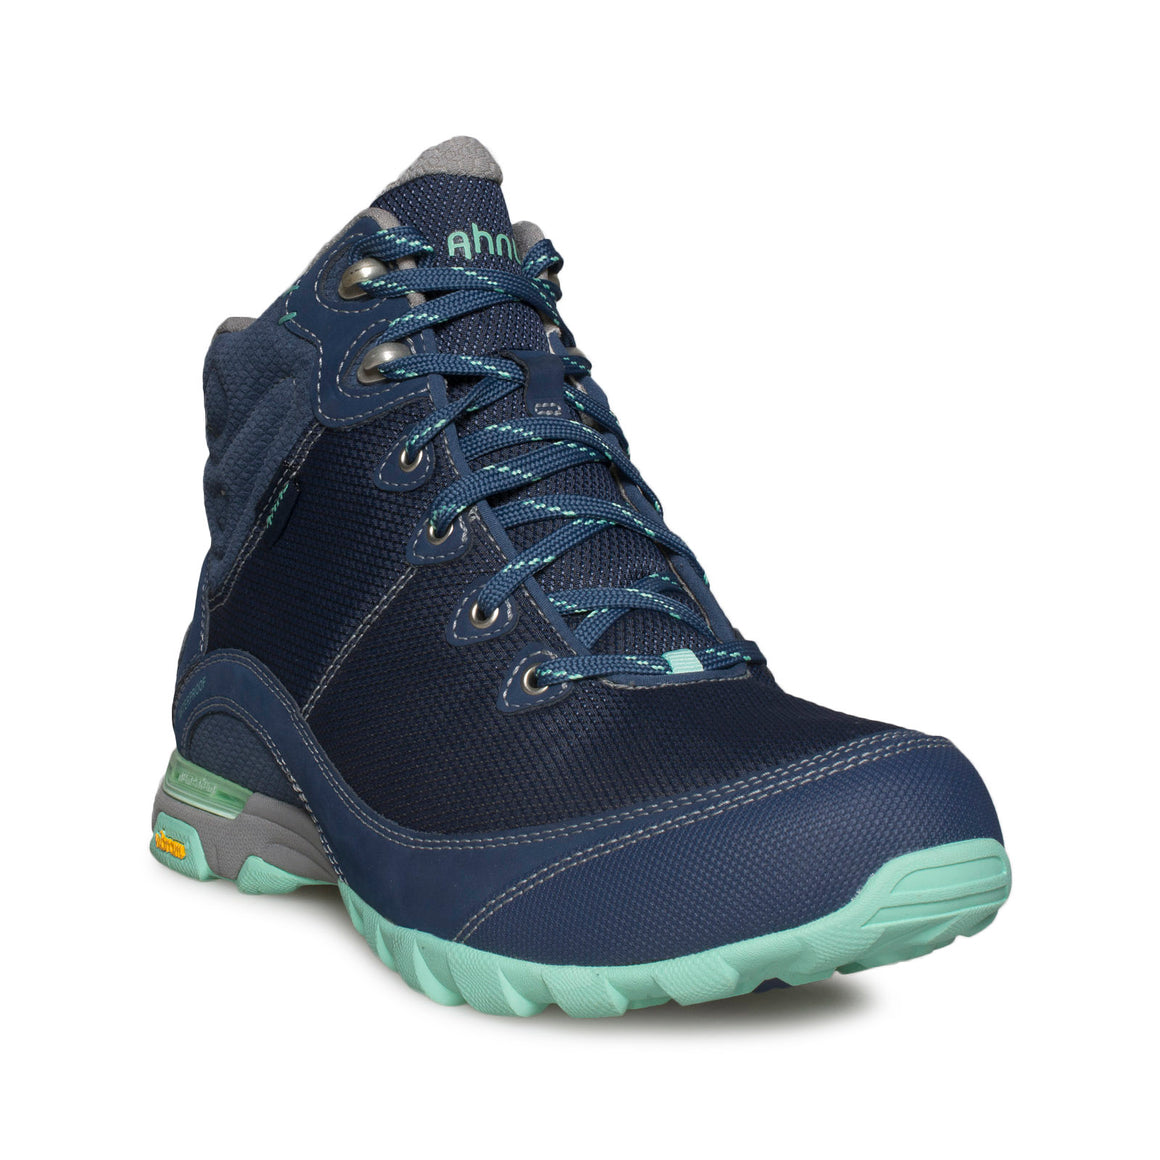 Ahnu Sugarpine II WP Boot Ripstop Insignia Blue - Women's